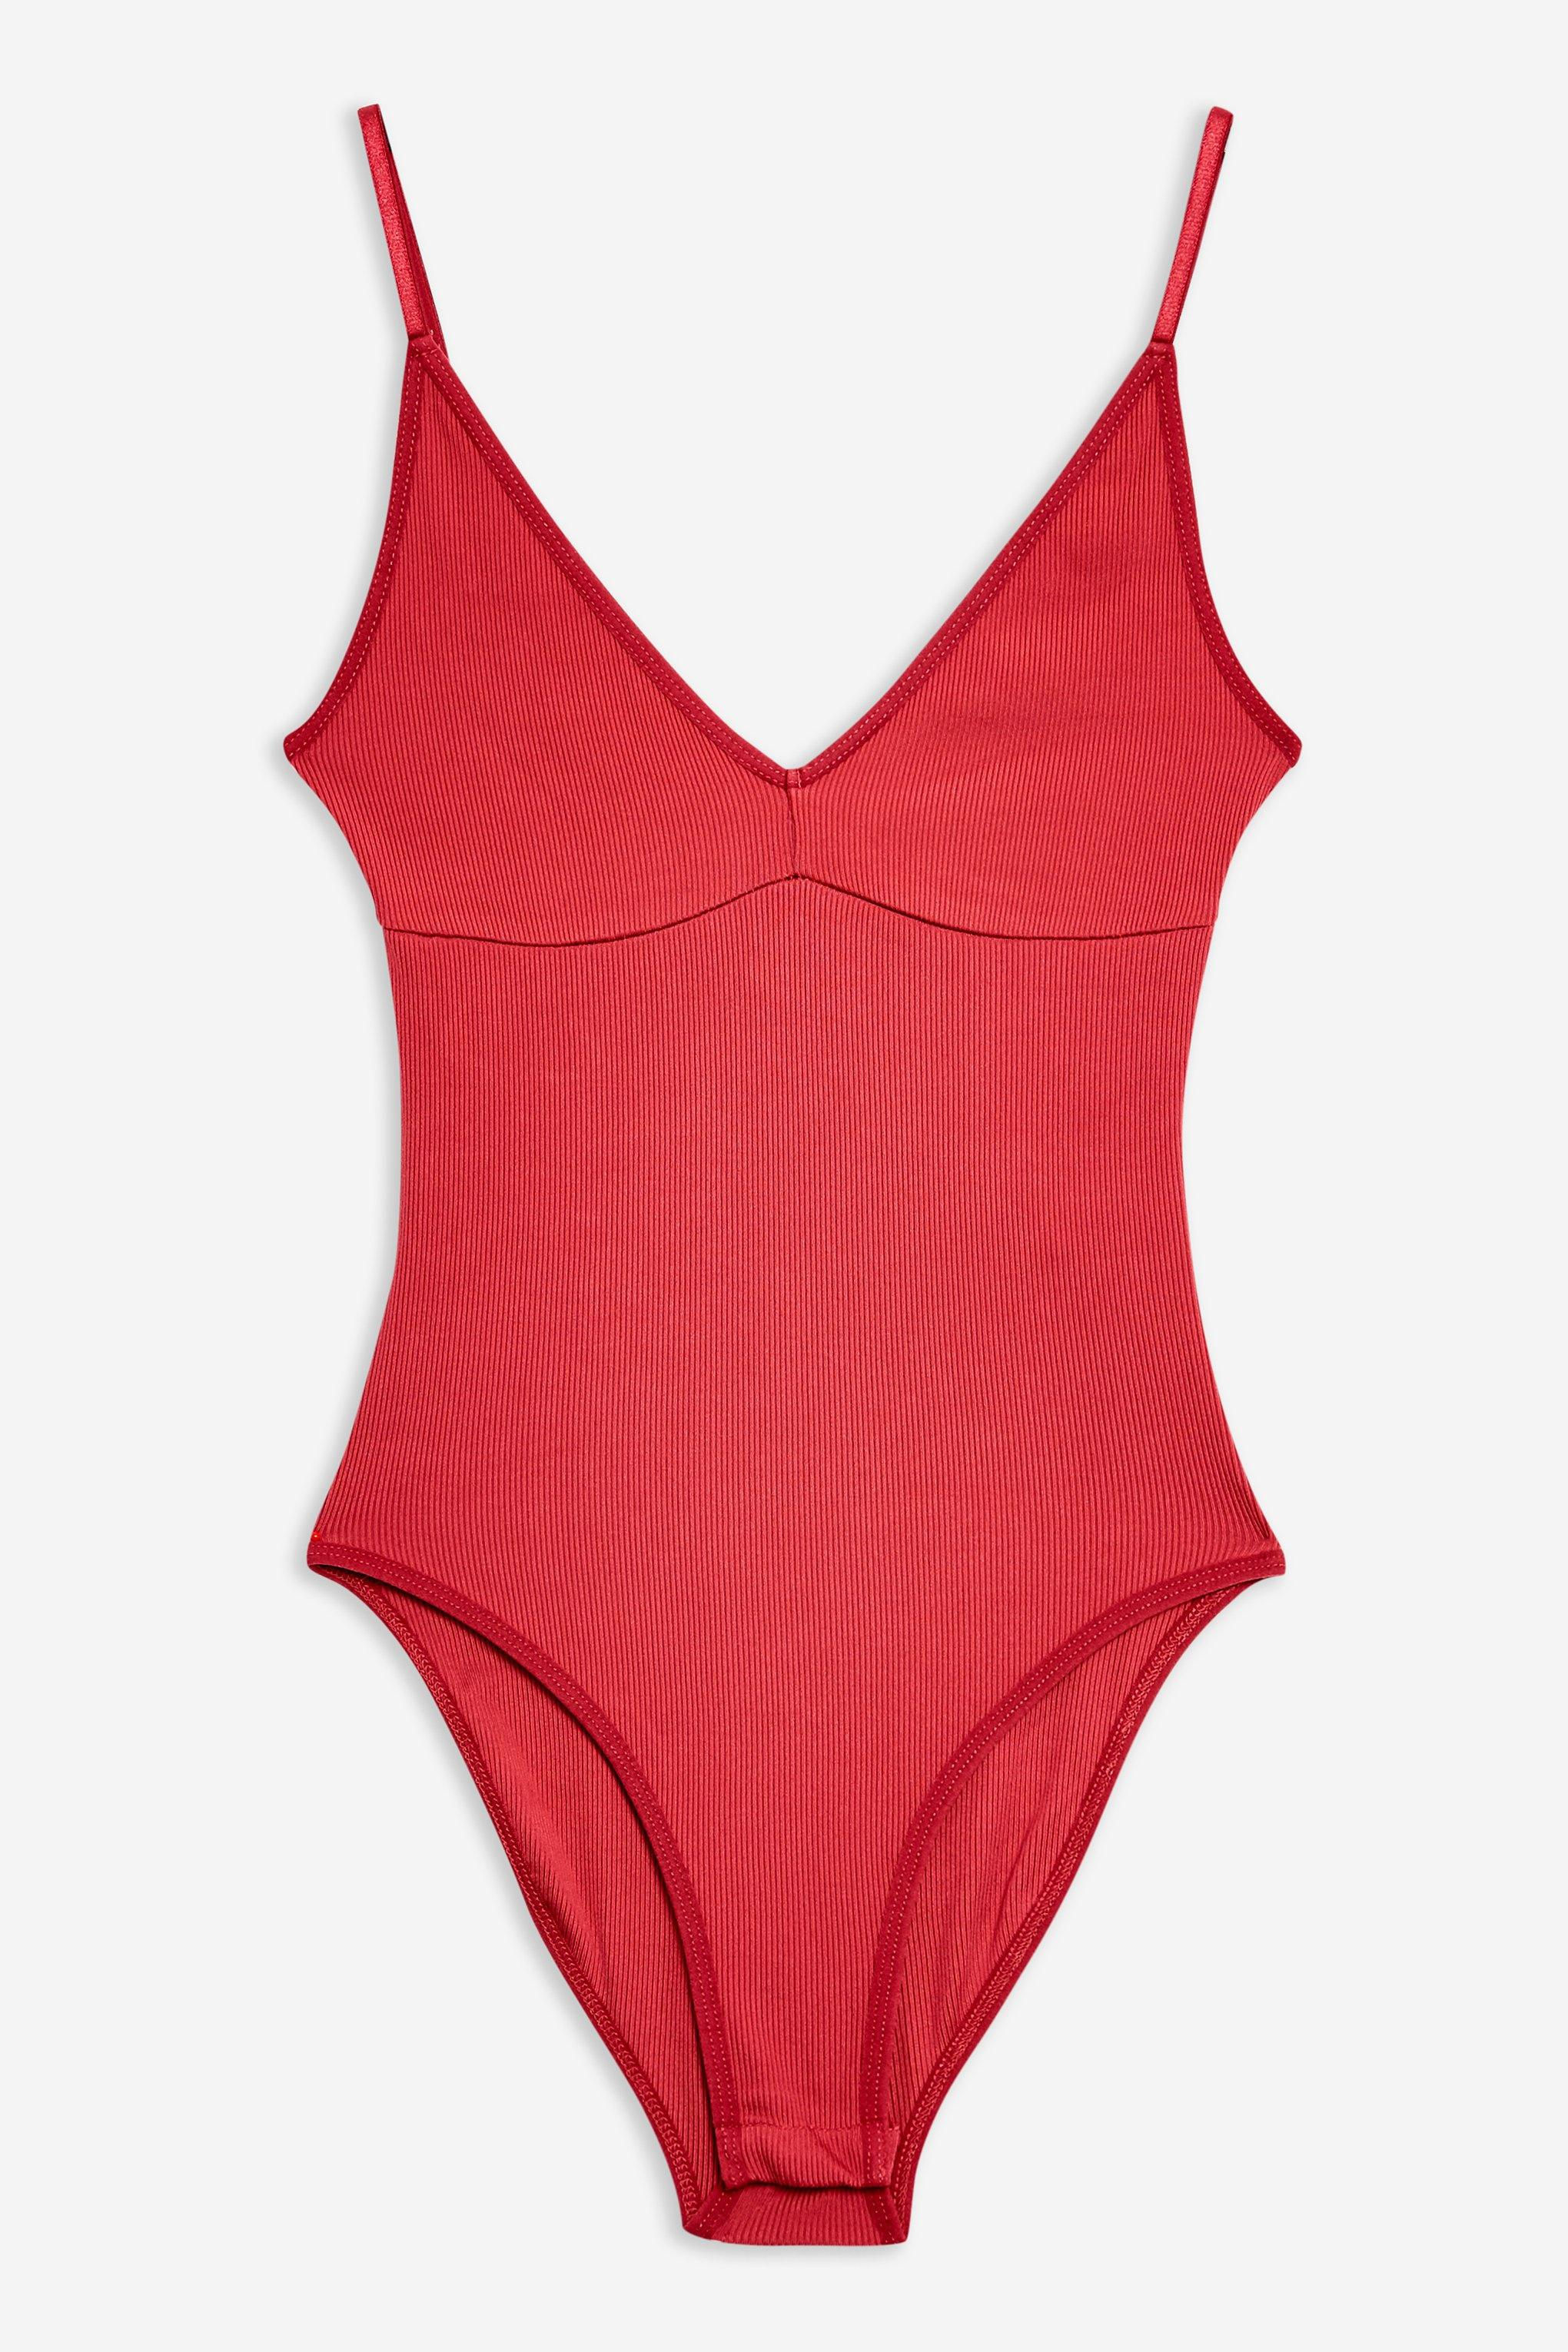 d58a615673 TOPSHOP - Red Plunge Strappy Bodysuit - Lyst. View fullscreen